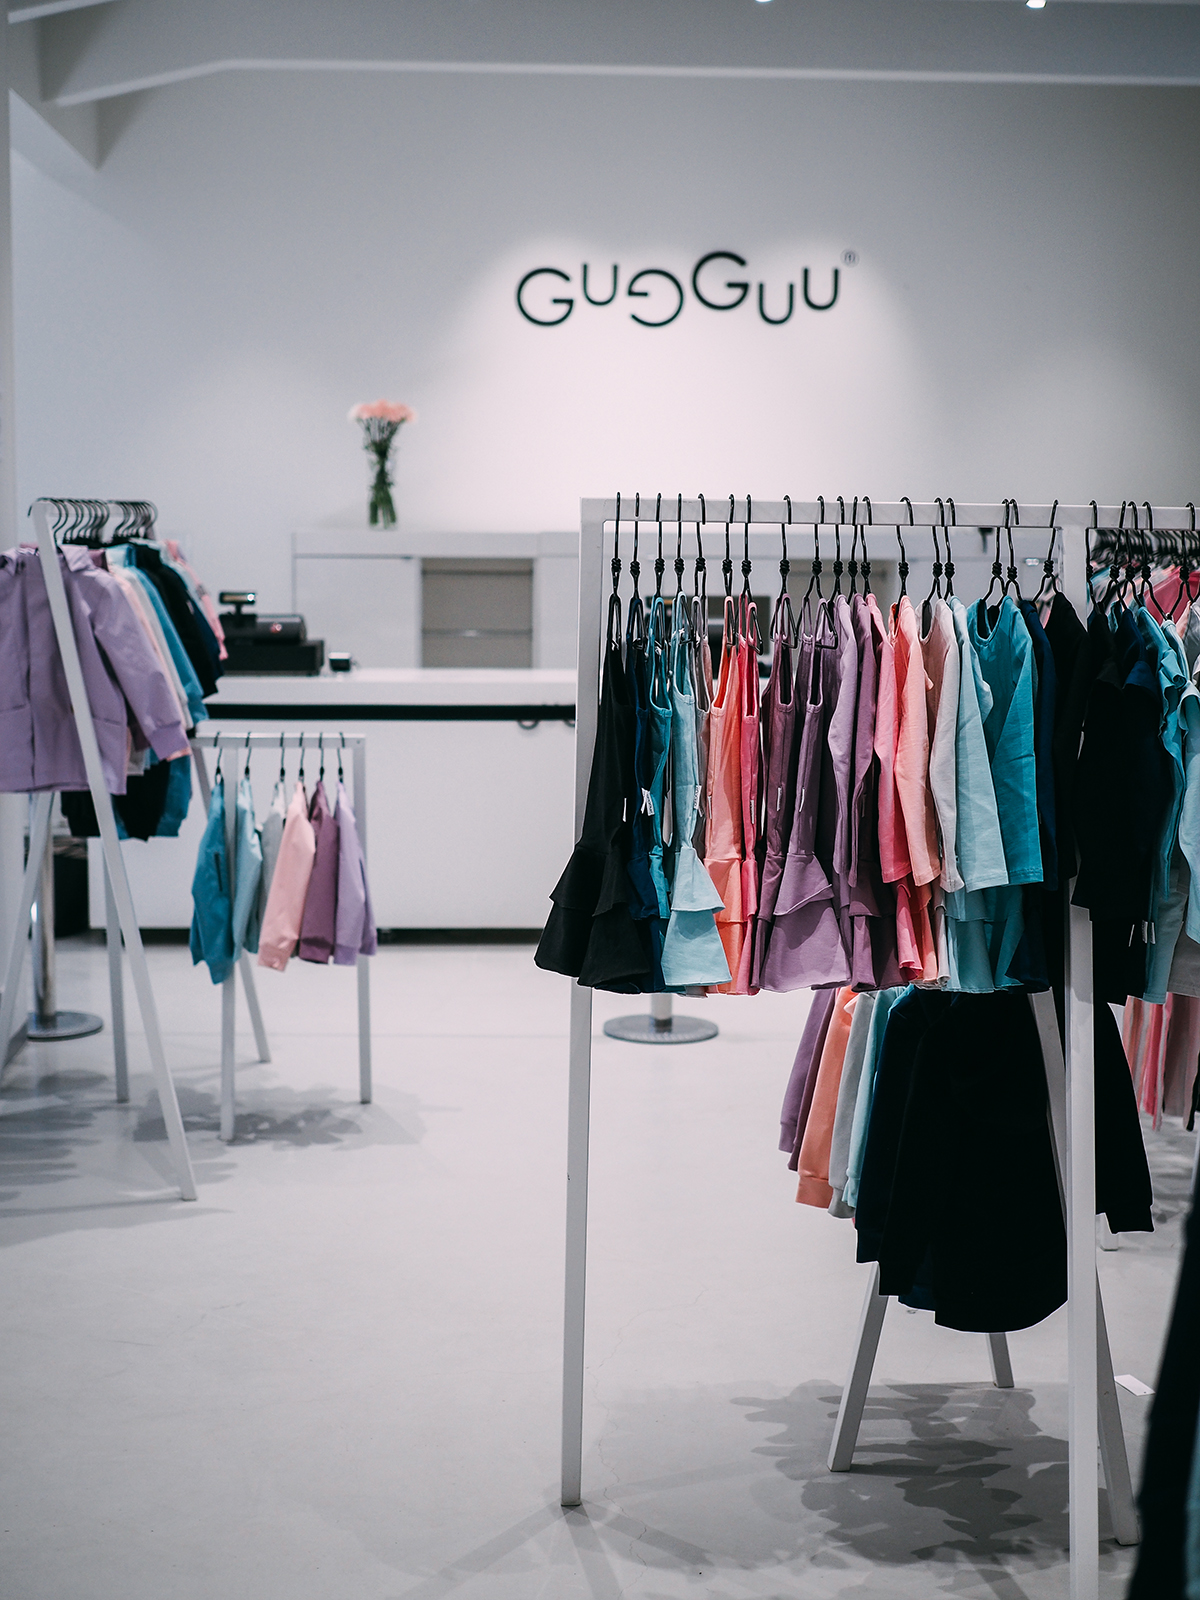 Gugguu pop-up shop